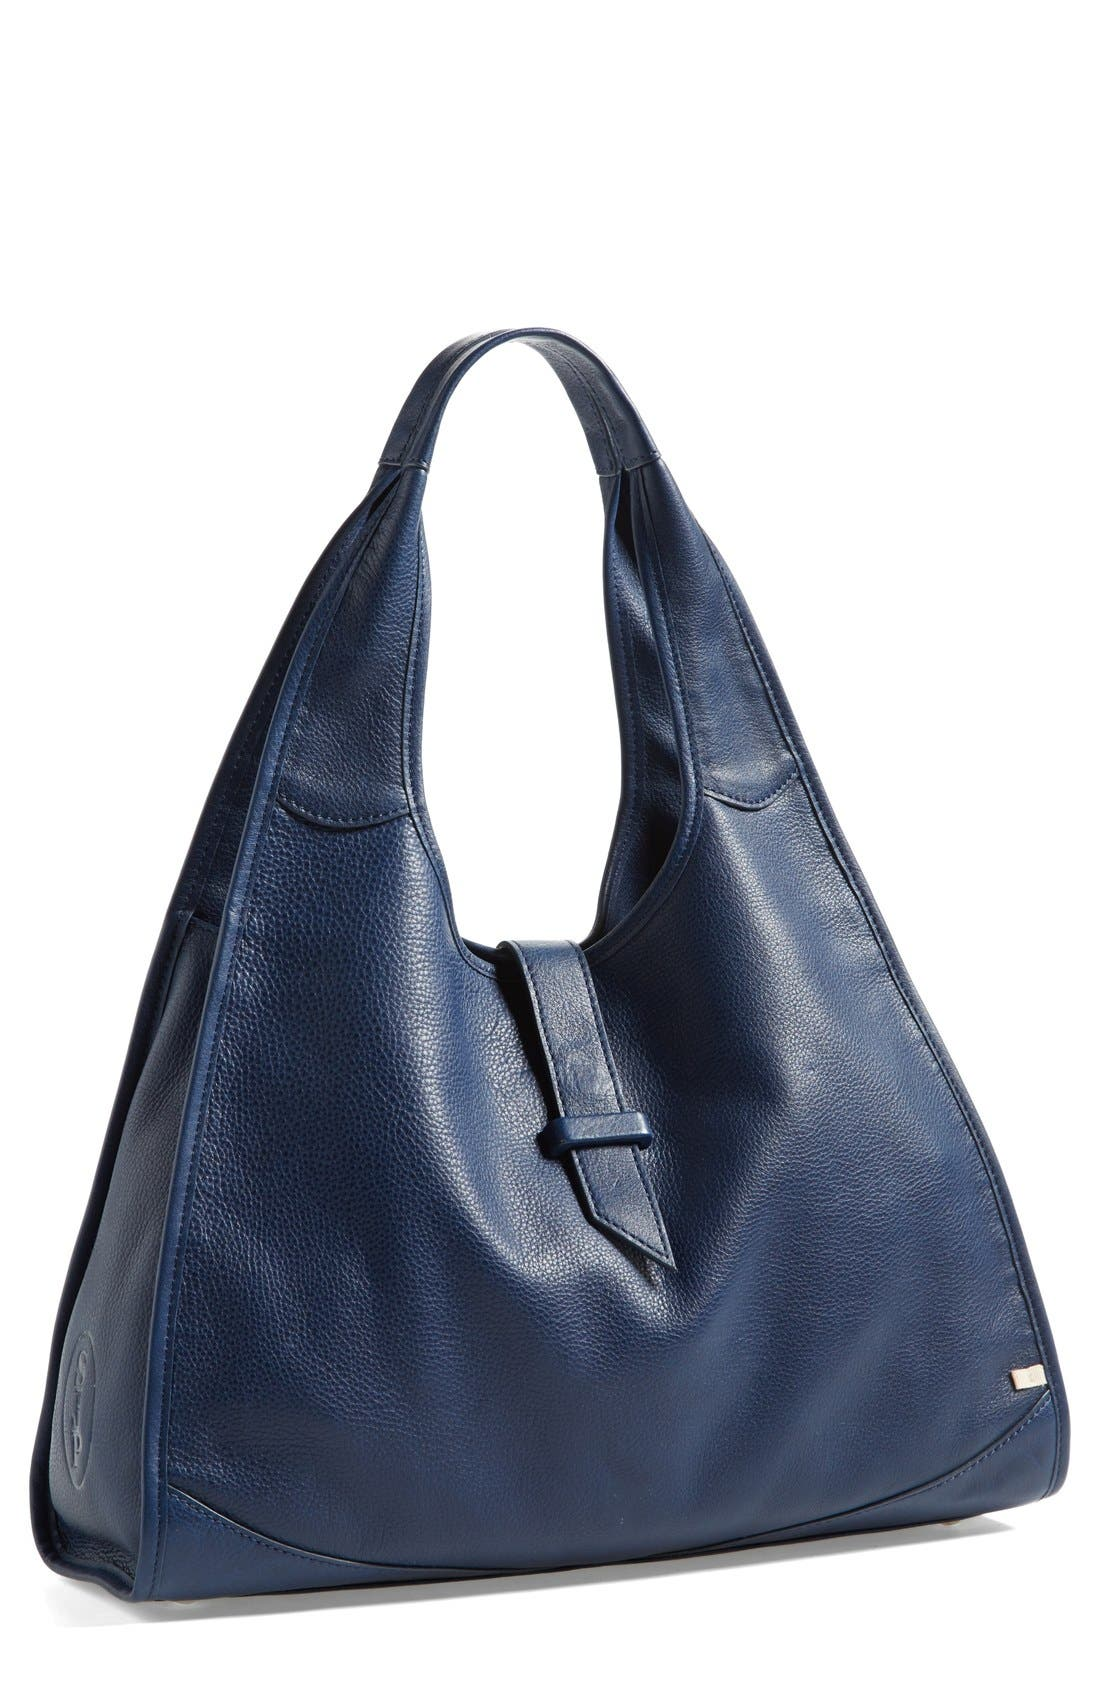 Main Image - SJP by Sarah Jessica Parker 'New Yorker' Leather Hobo